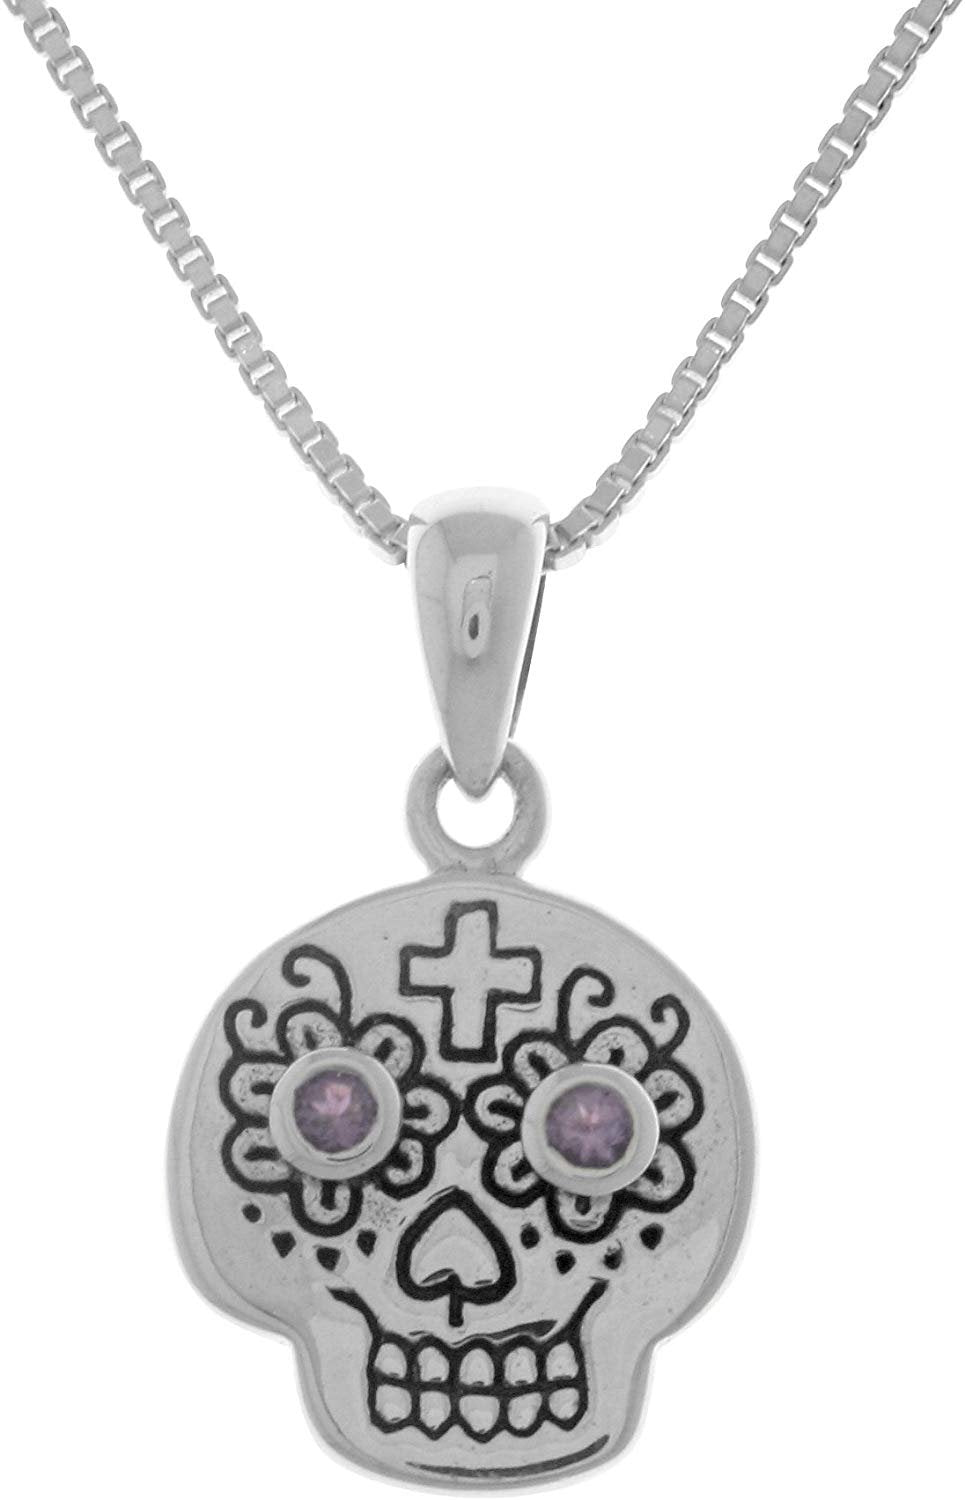 Jewelry Trends Sterling Silver Small Voodoo Skull Pendant with Amethyst on 18 Inch Box Chain Necklace